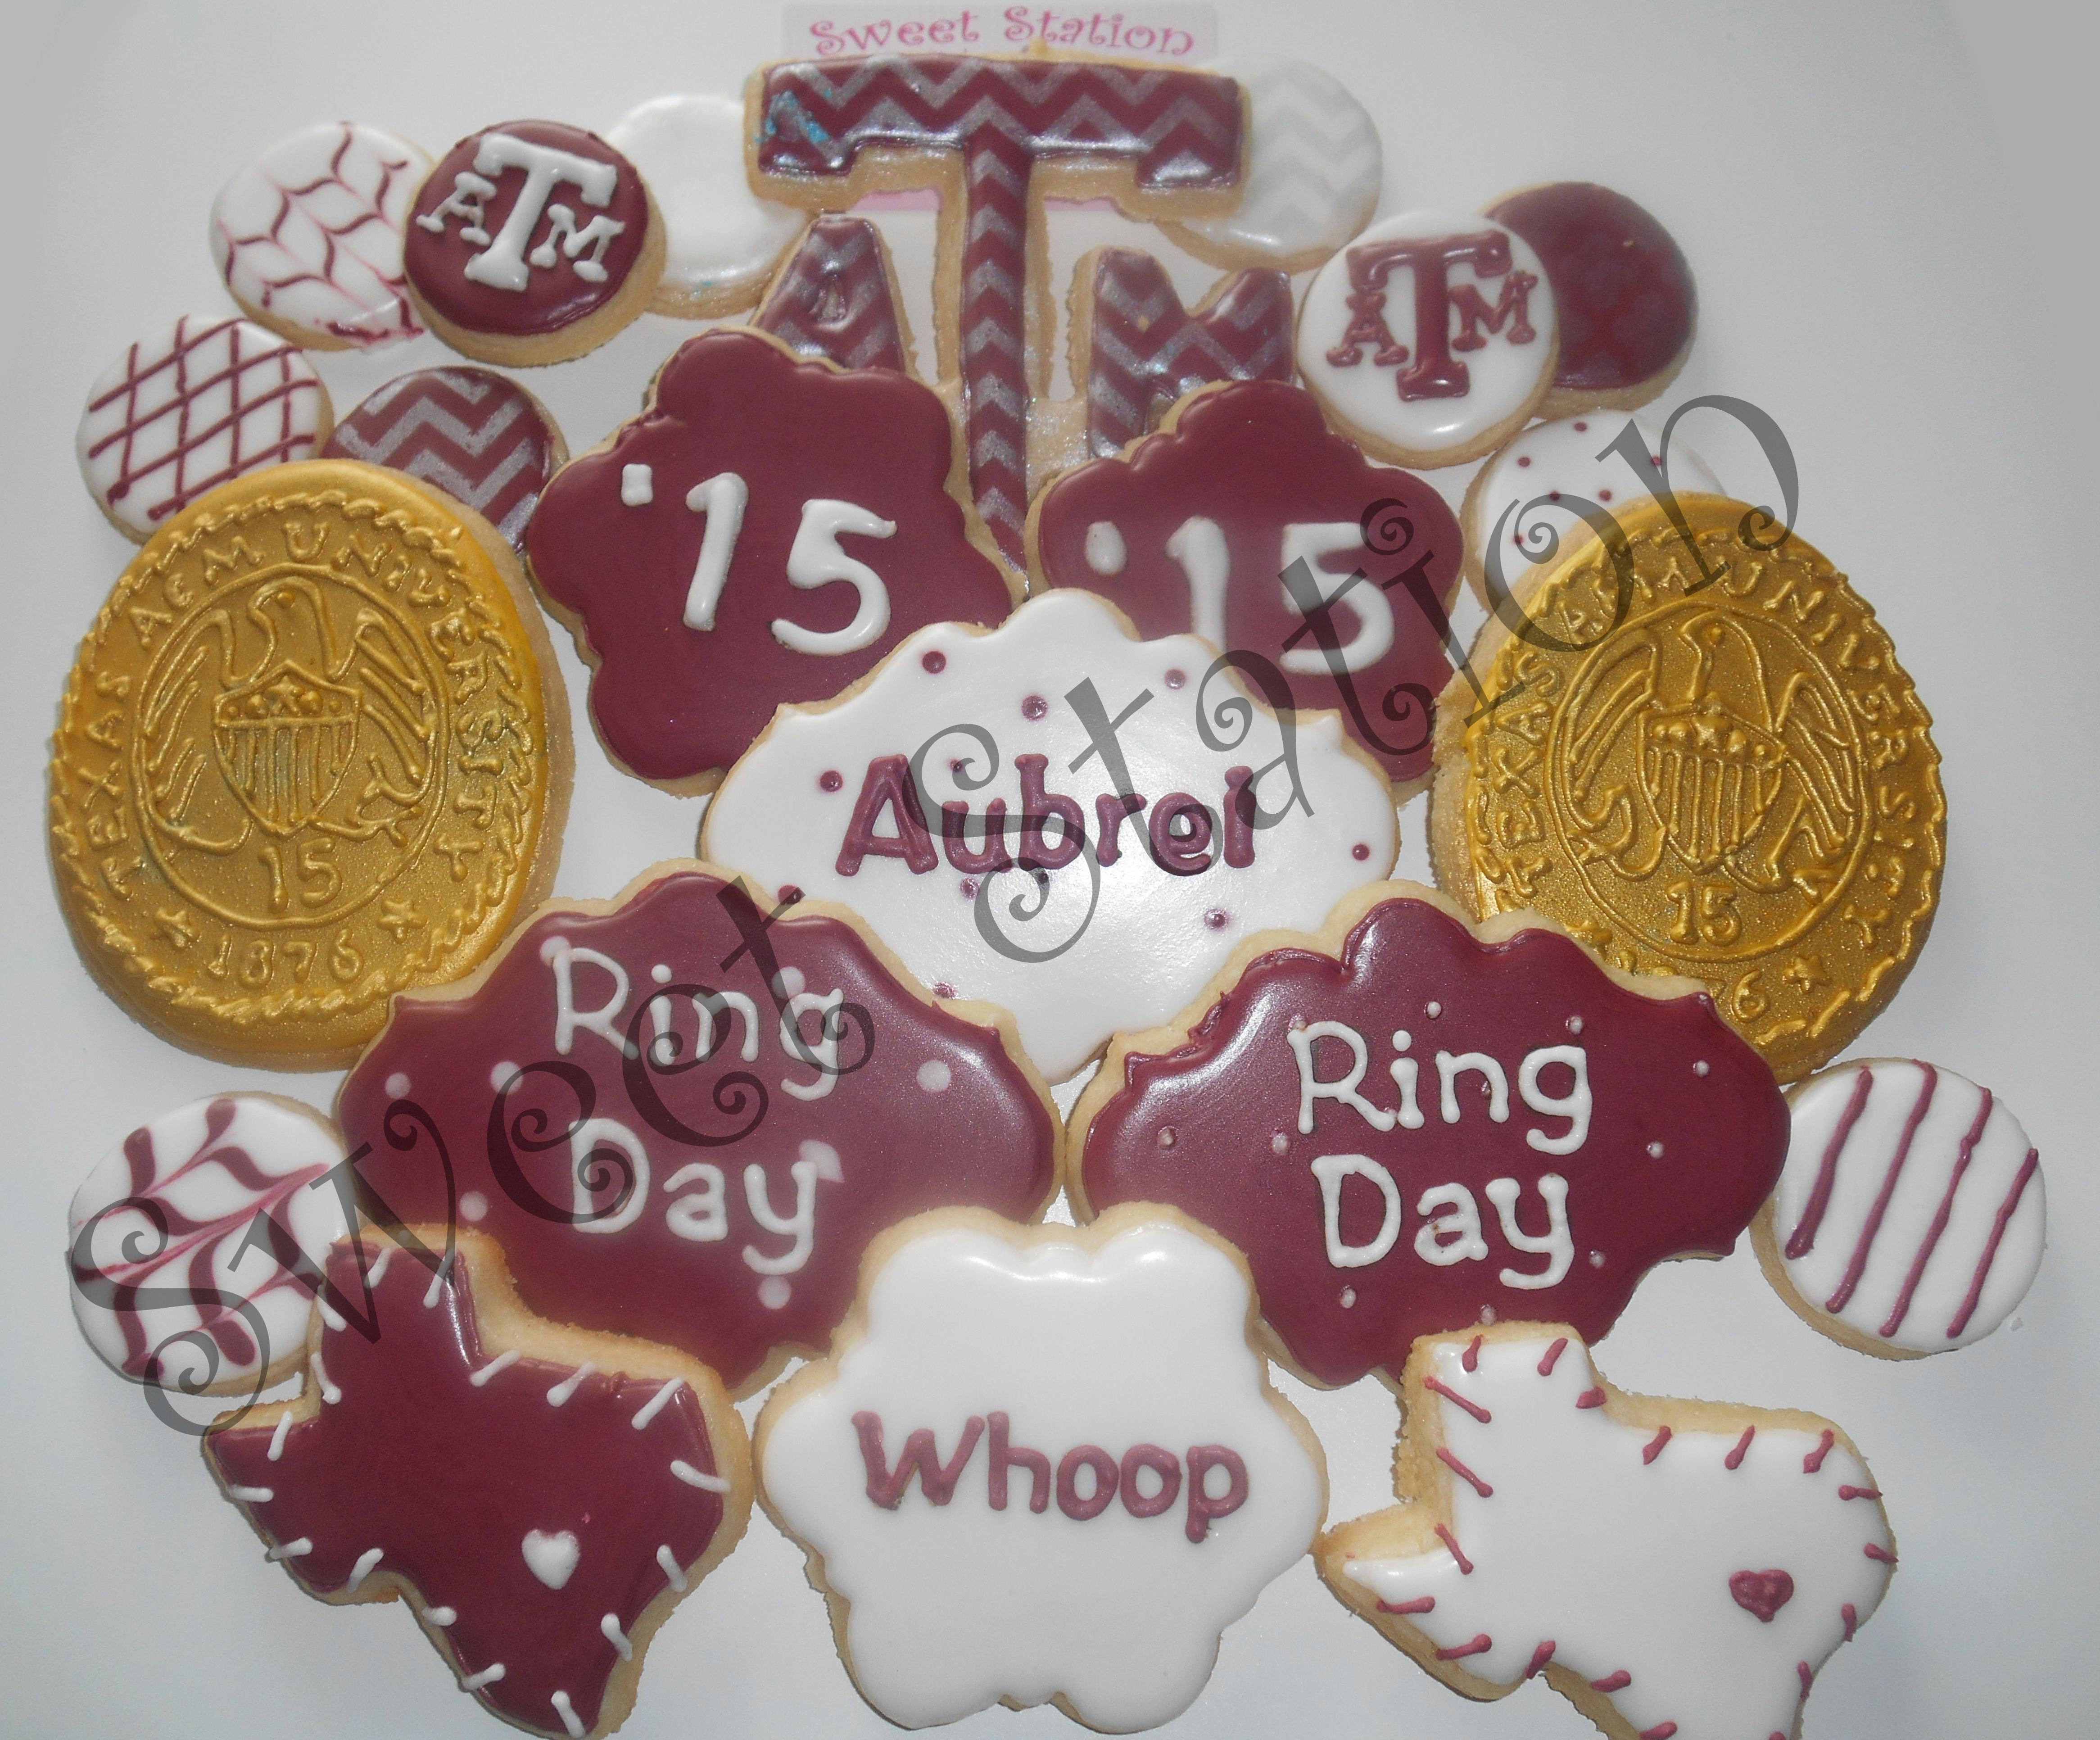 Aggie Ring Cookies by Sweet Station, College Station, TX 979-690-7502